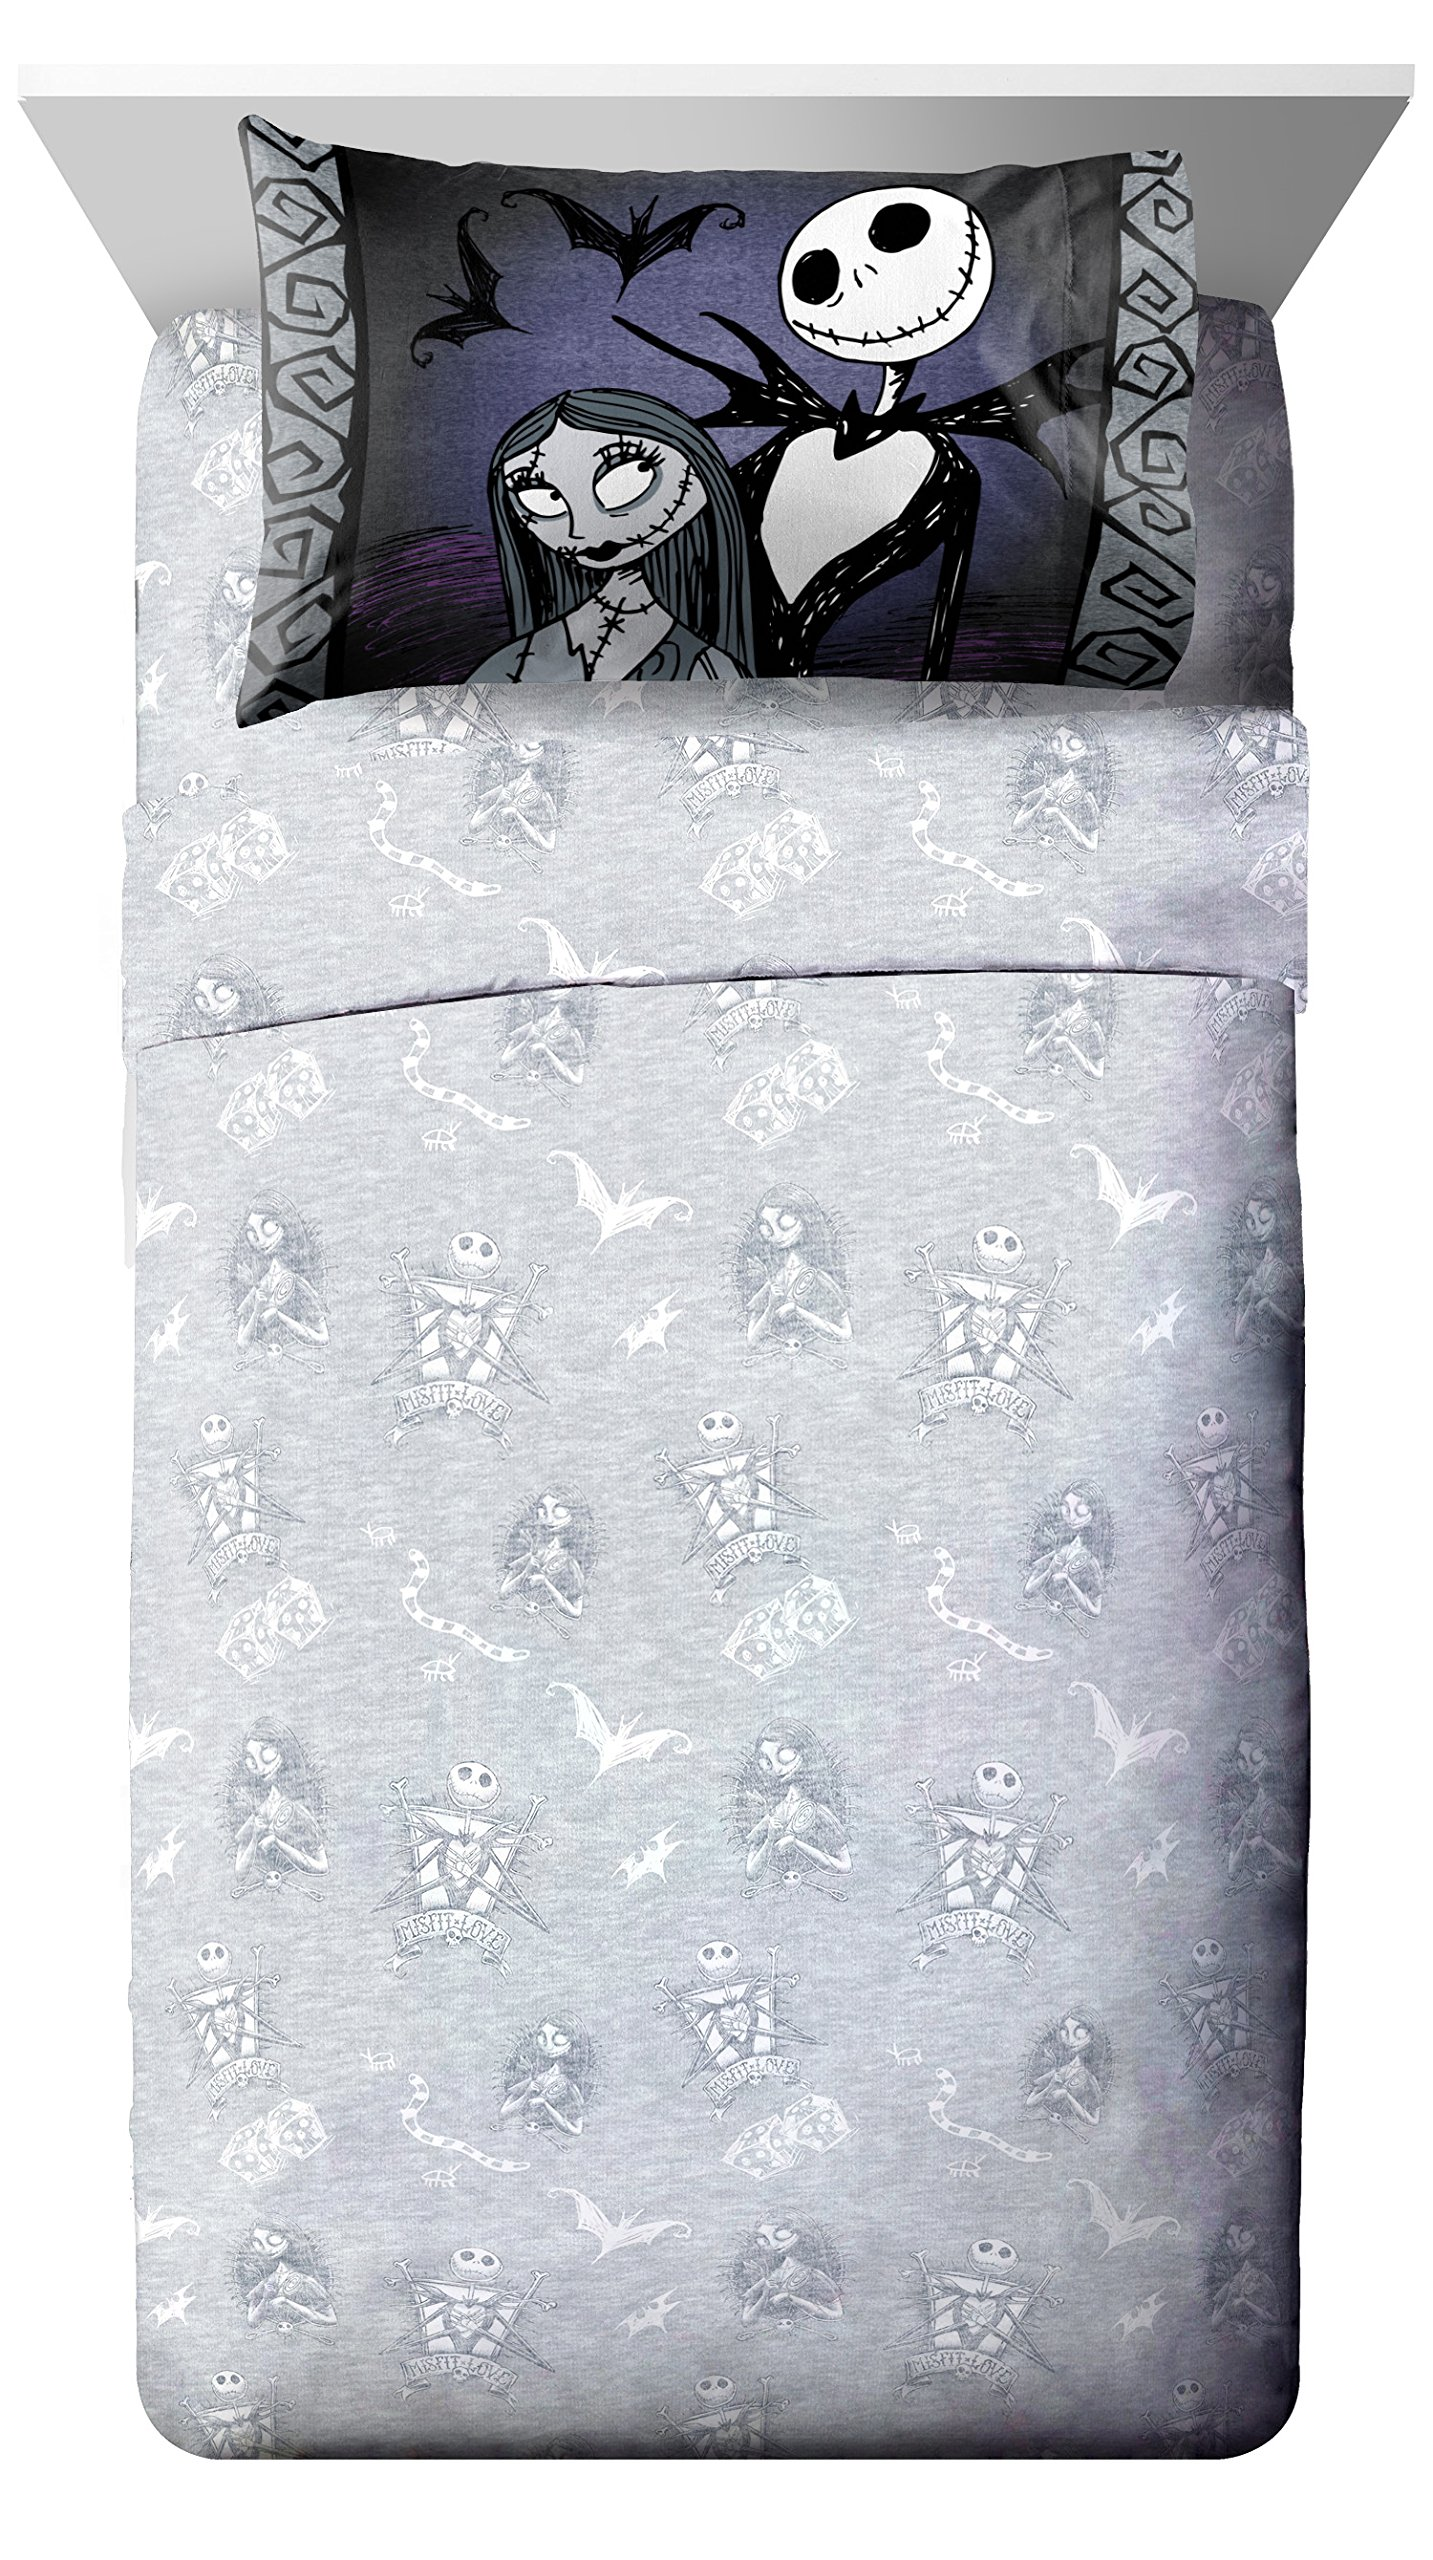 Disney Nightmare Before Christmas Meant To Be Full Sheet Set - 4 Piece Set Super Soft Kid's Bedding Features Jack Skellington - Fade Resistant Polyester Microfiber Sheets (Official Product)